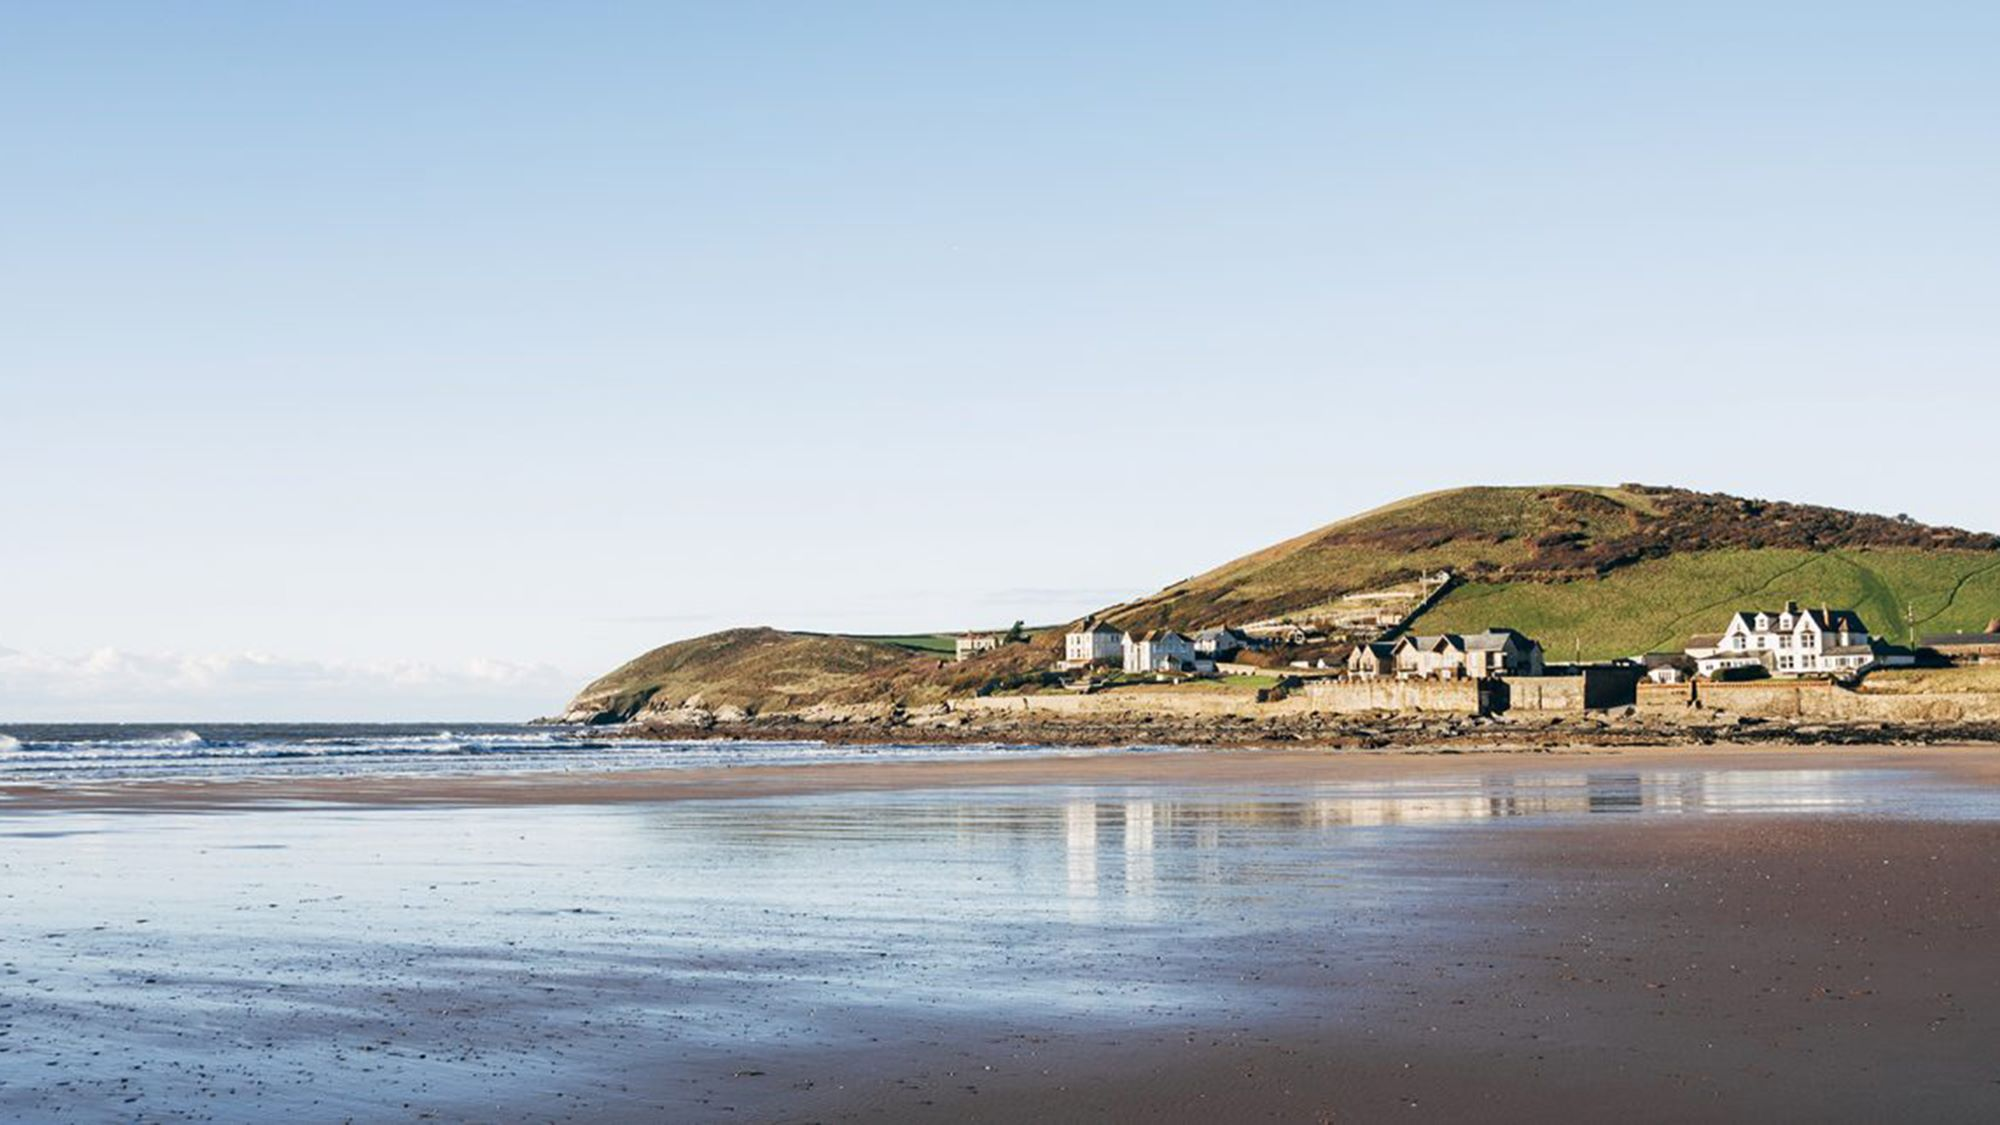 Croyde beach on the coast of North Devon